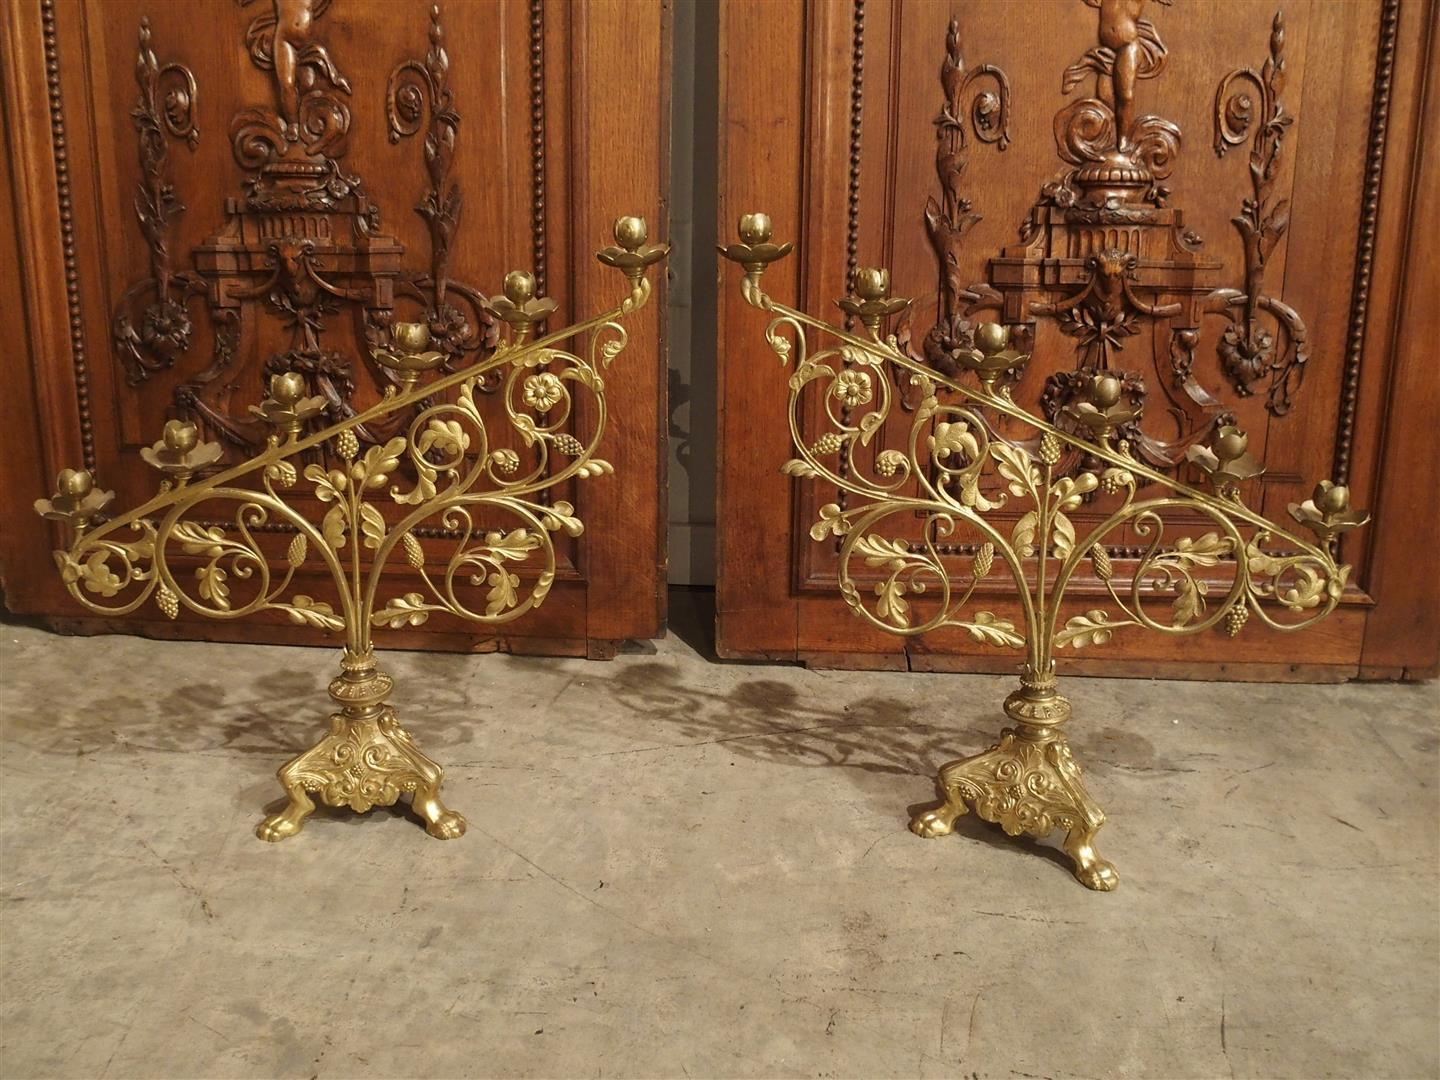 Pair of Antique French Gilt Bronze Altar Candelabras